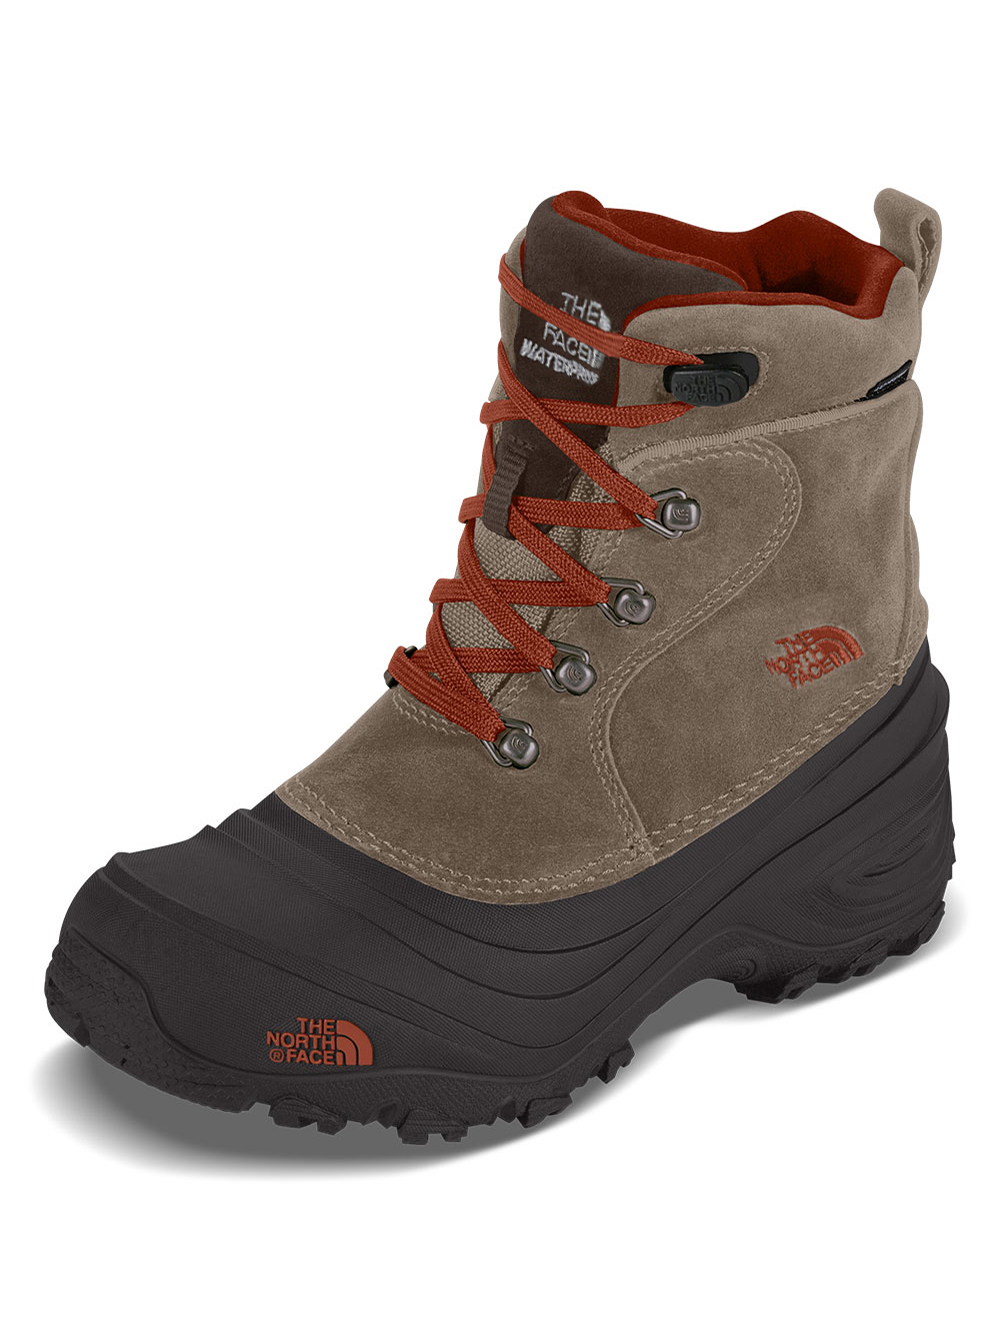 The North Face Boys' Chilkat Lace II Boots (Youth Sizes 13 - 7) - mudpack brown/sienna orange, 3 youth